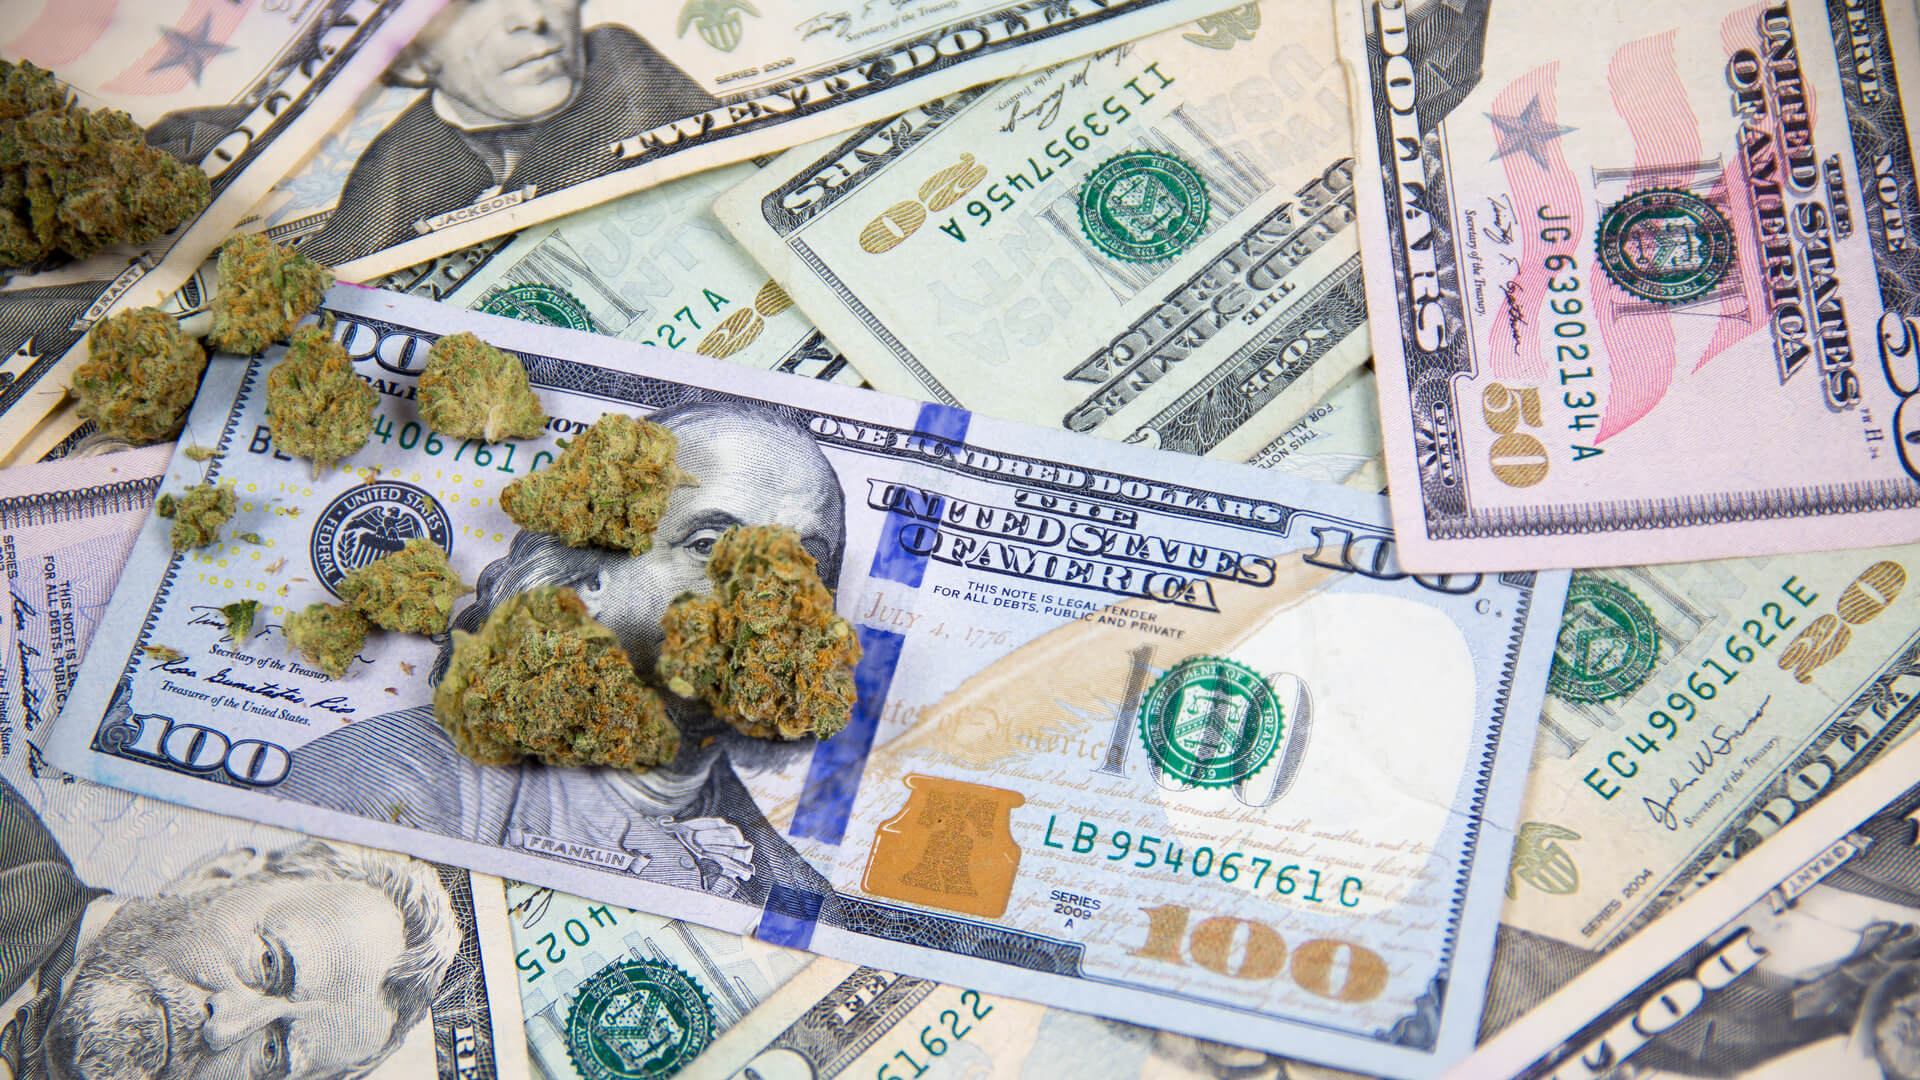 Marijuana buds on top of United States cash money